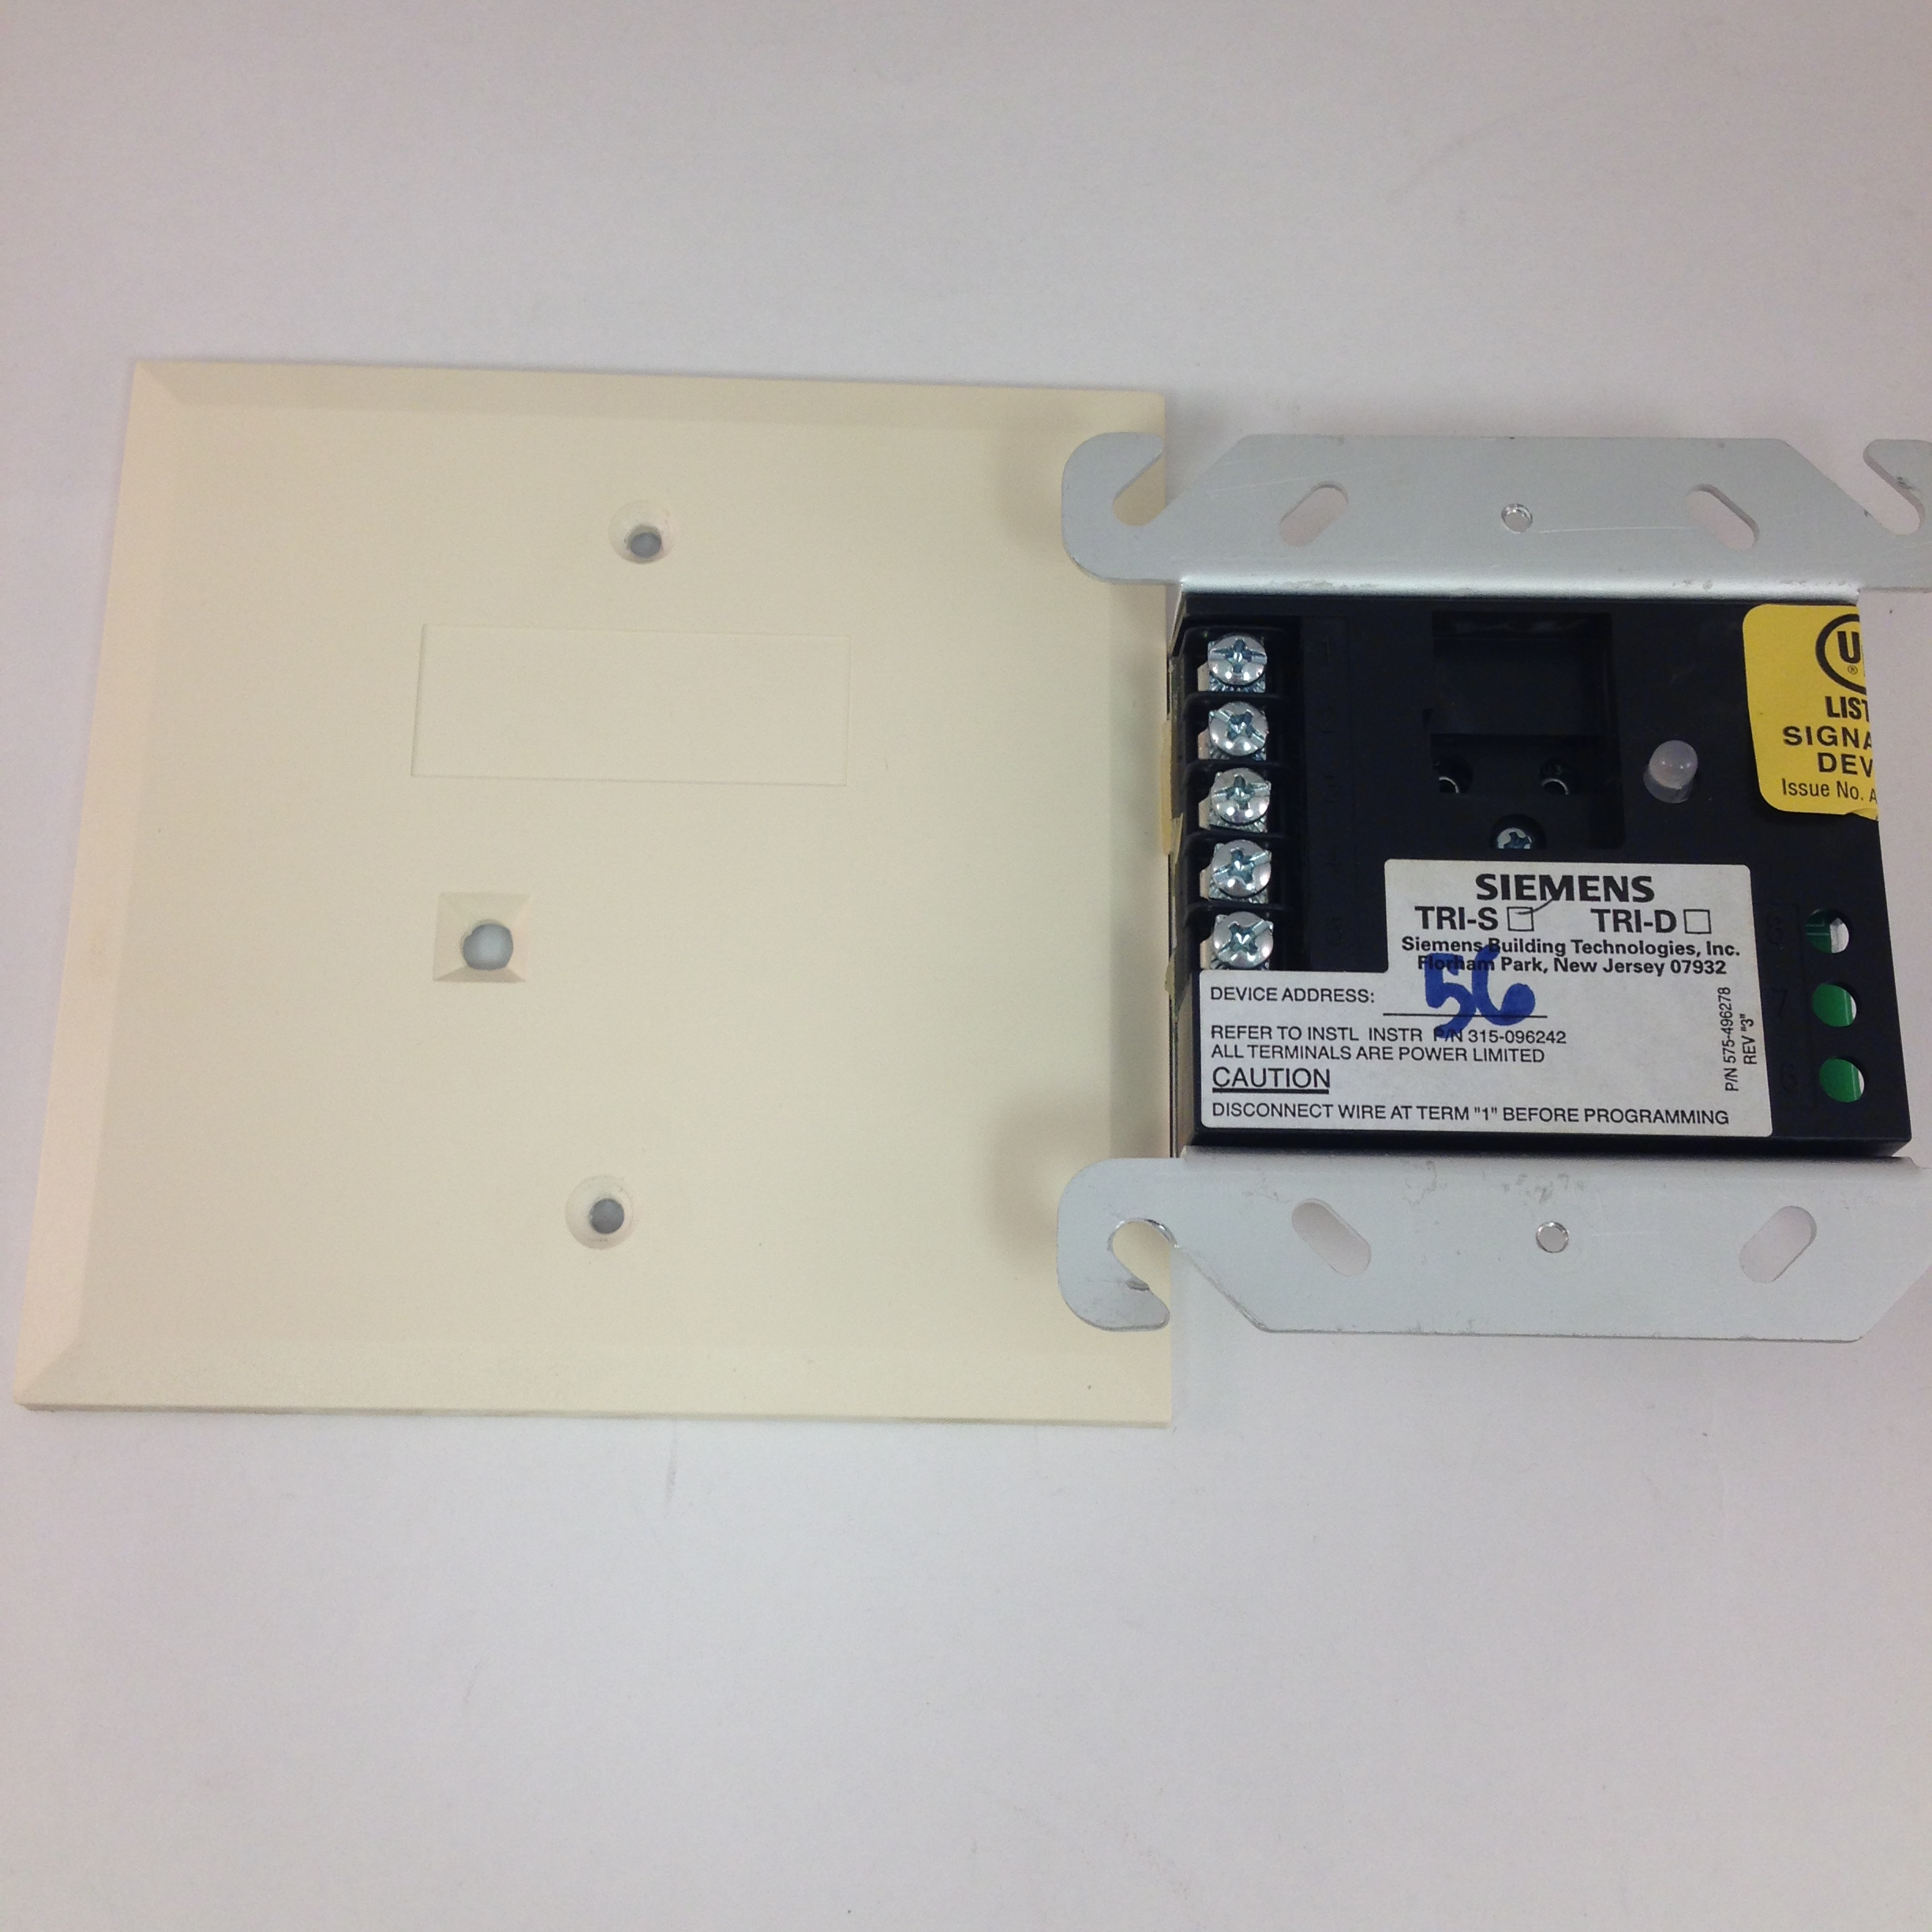 Siemens TRI-S Monitoring Module for MXL/MXLV Addressable Fire